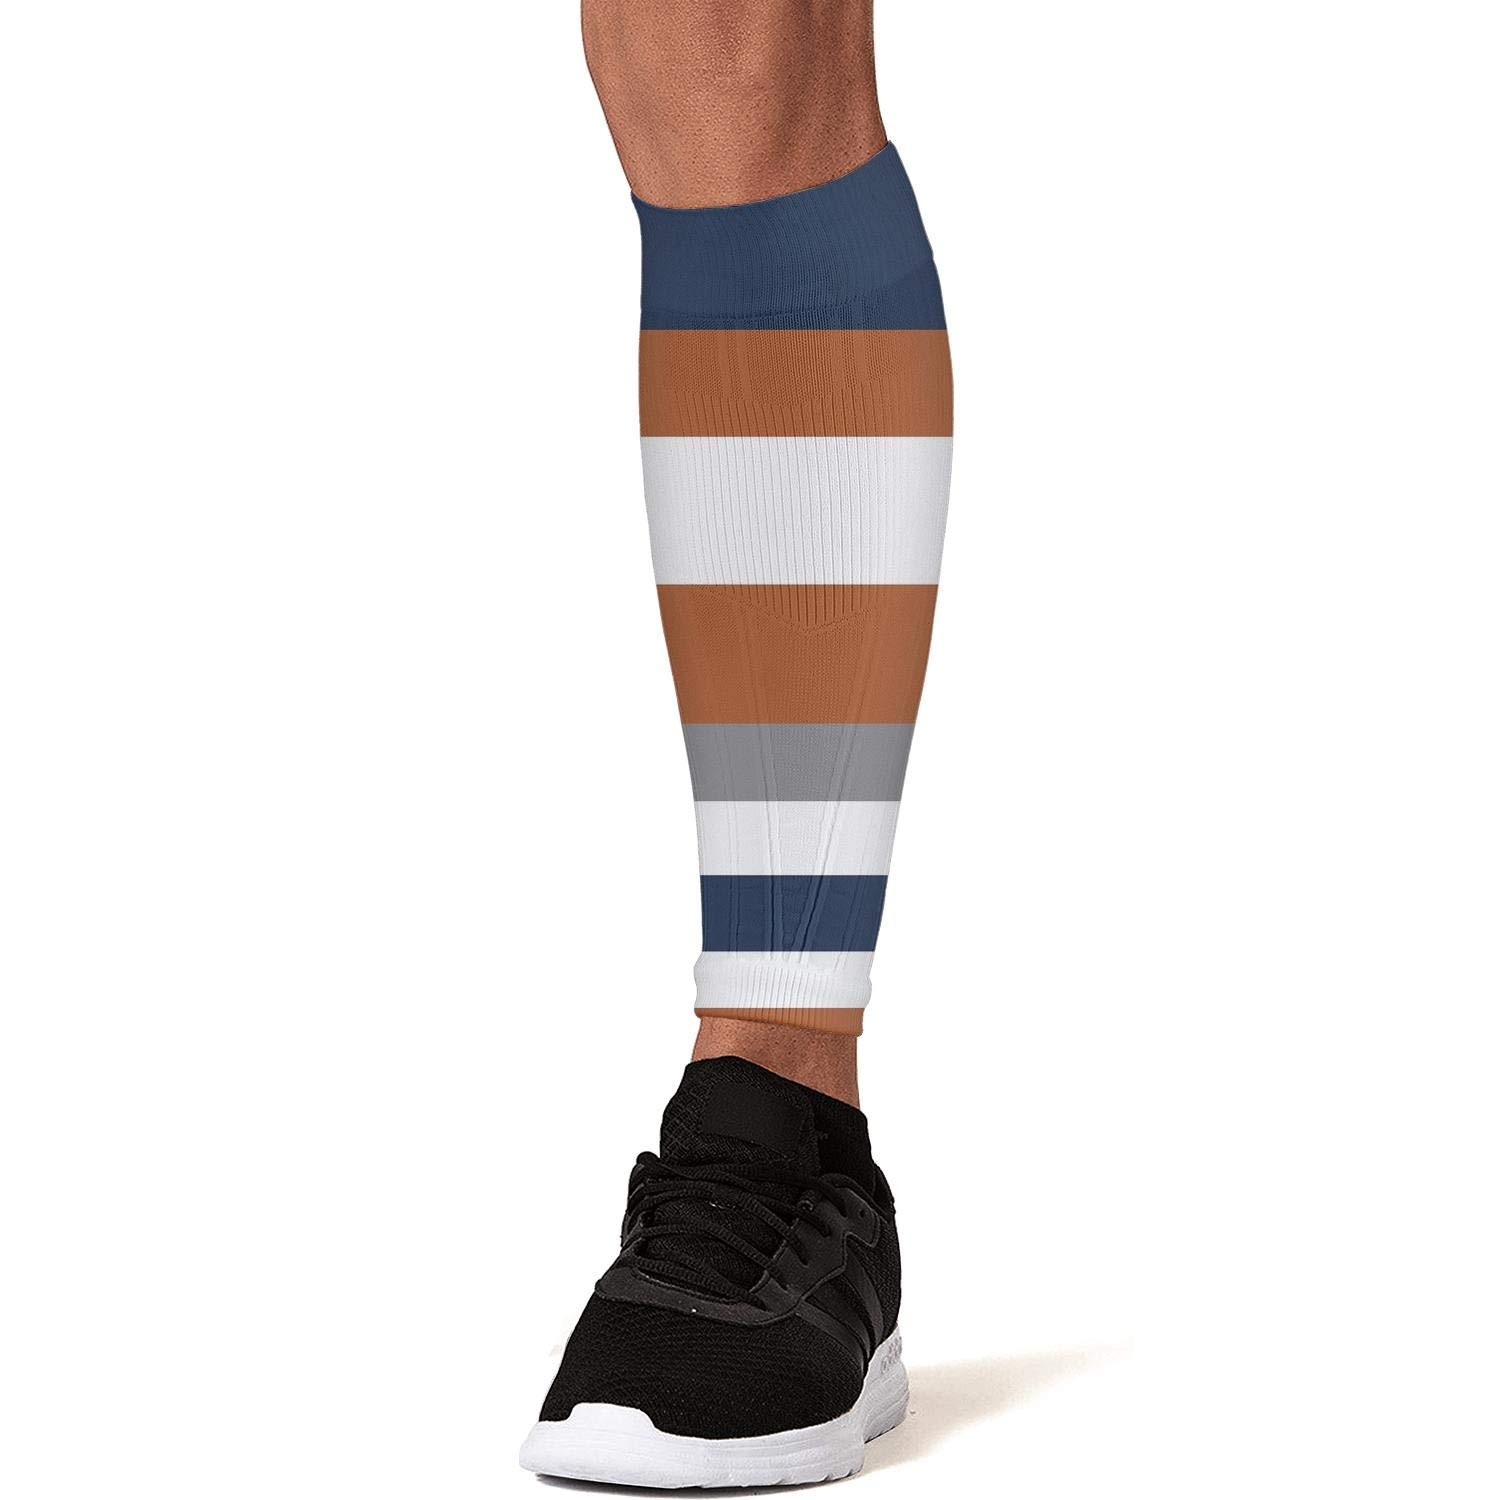 Smilelolly navy blue orange striped Calf Compression Sleeves Helps Calf Guard Leg Sleeves for Men Women